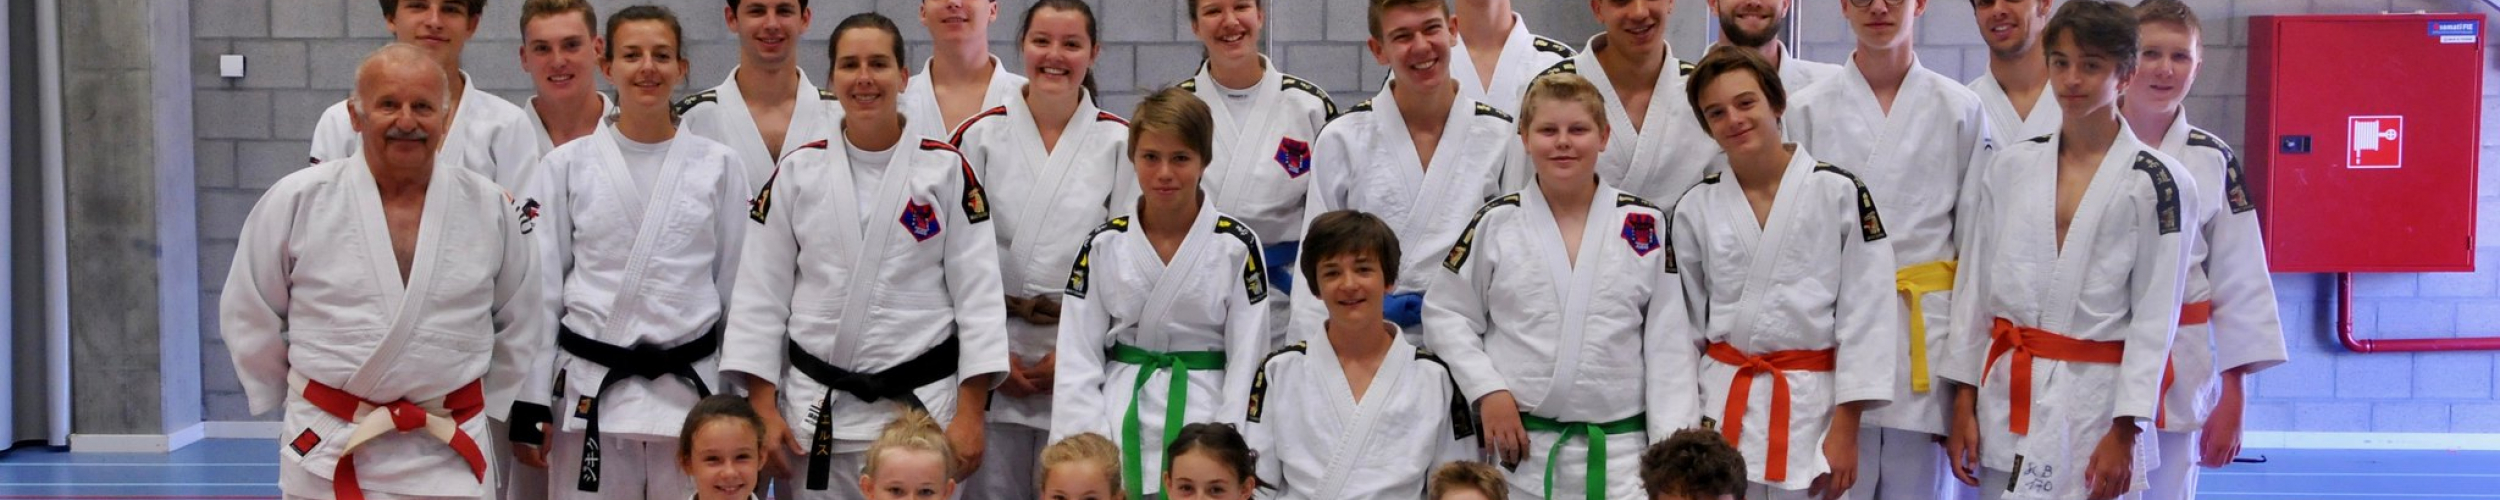 Training judokamp met Leo